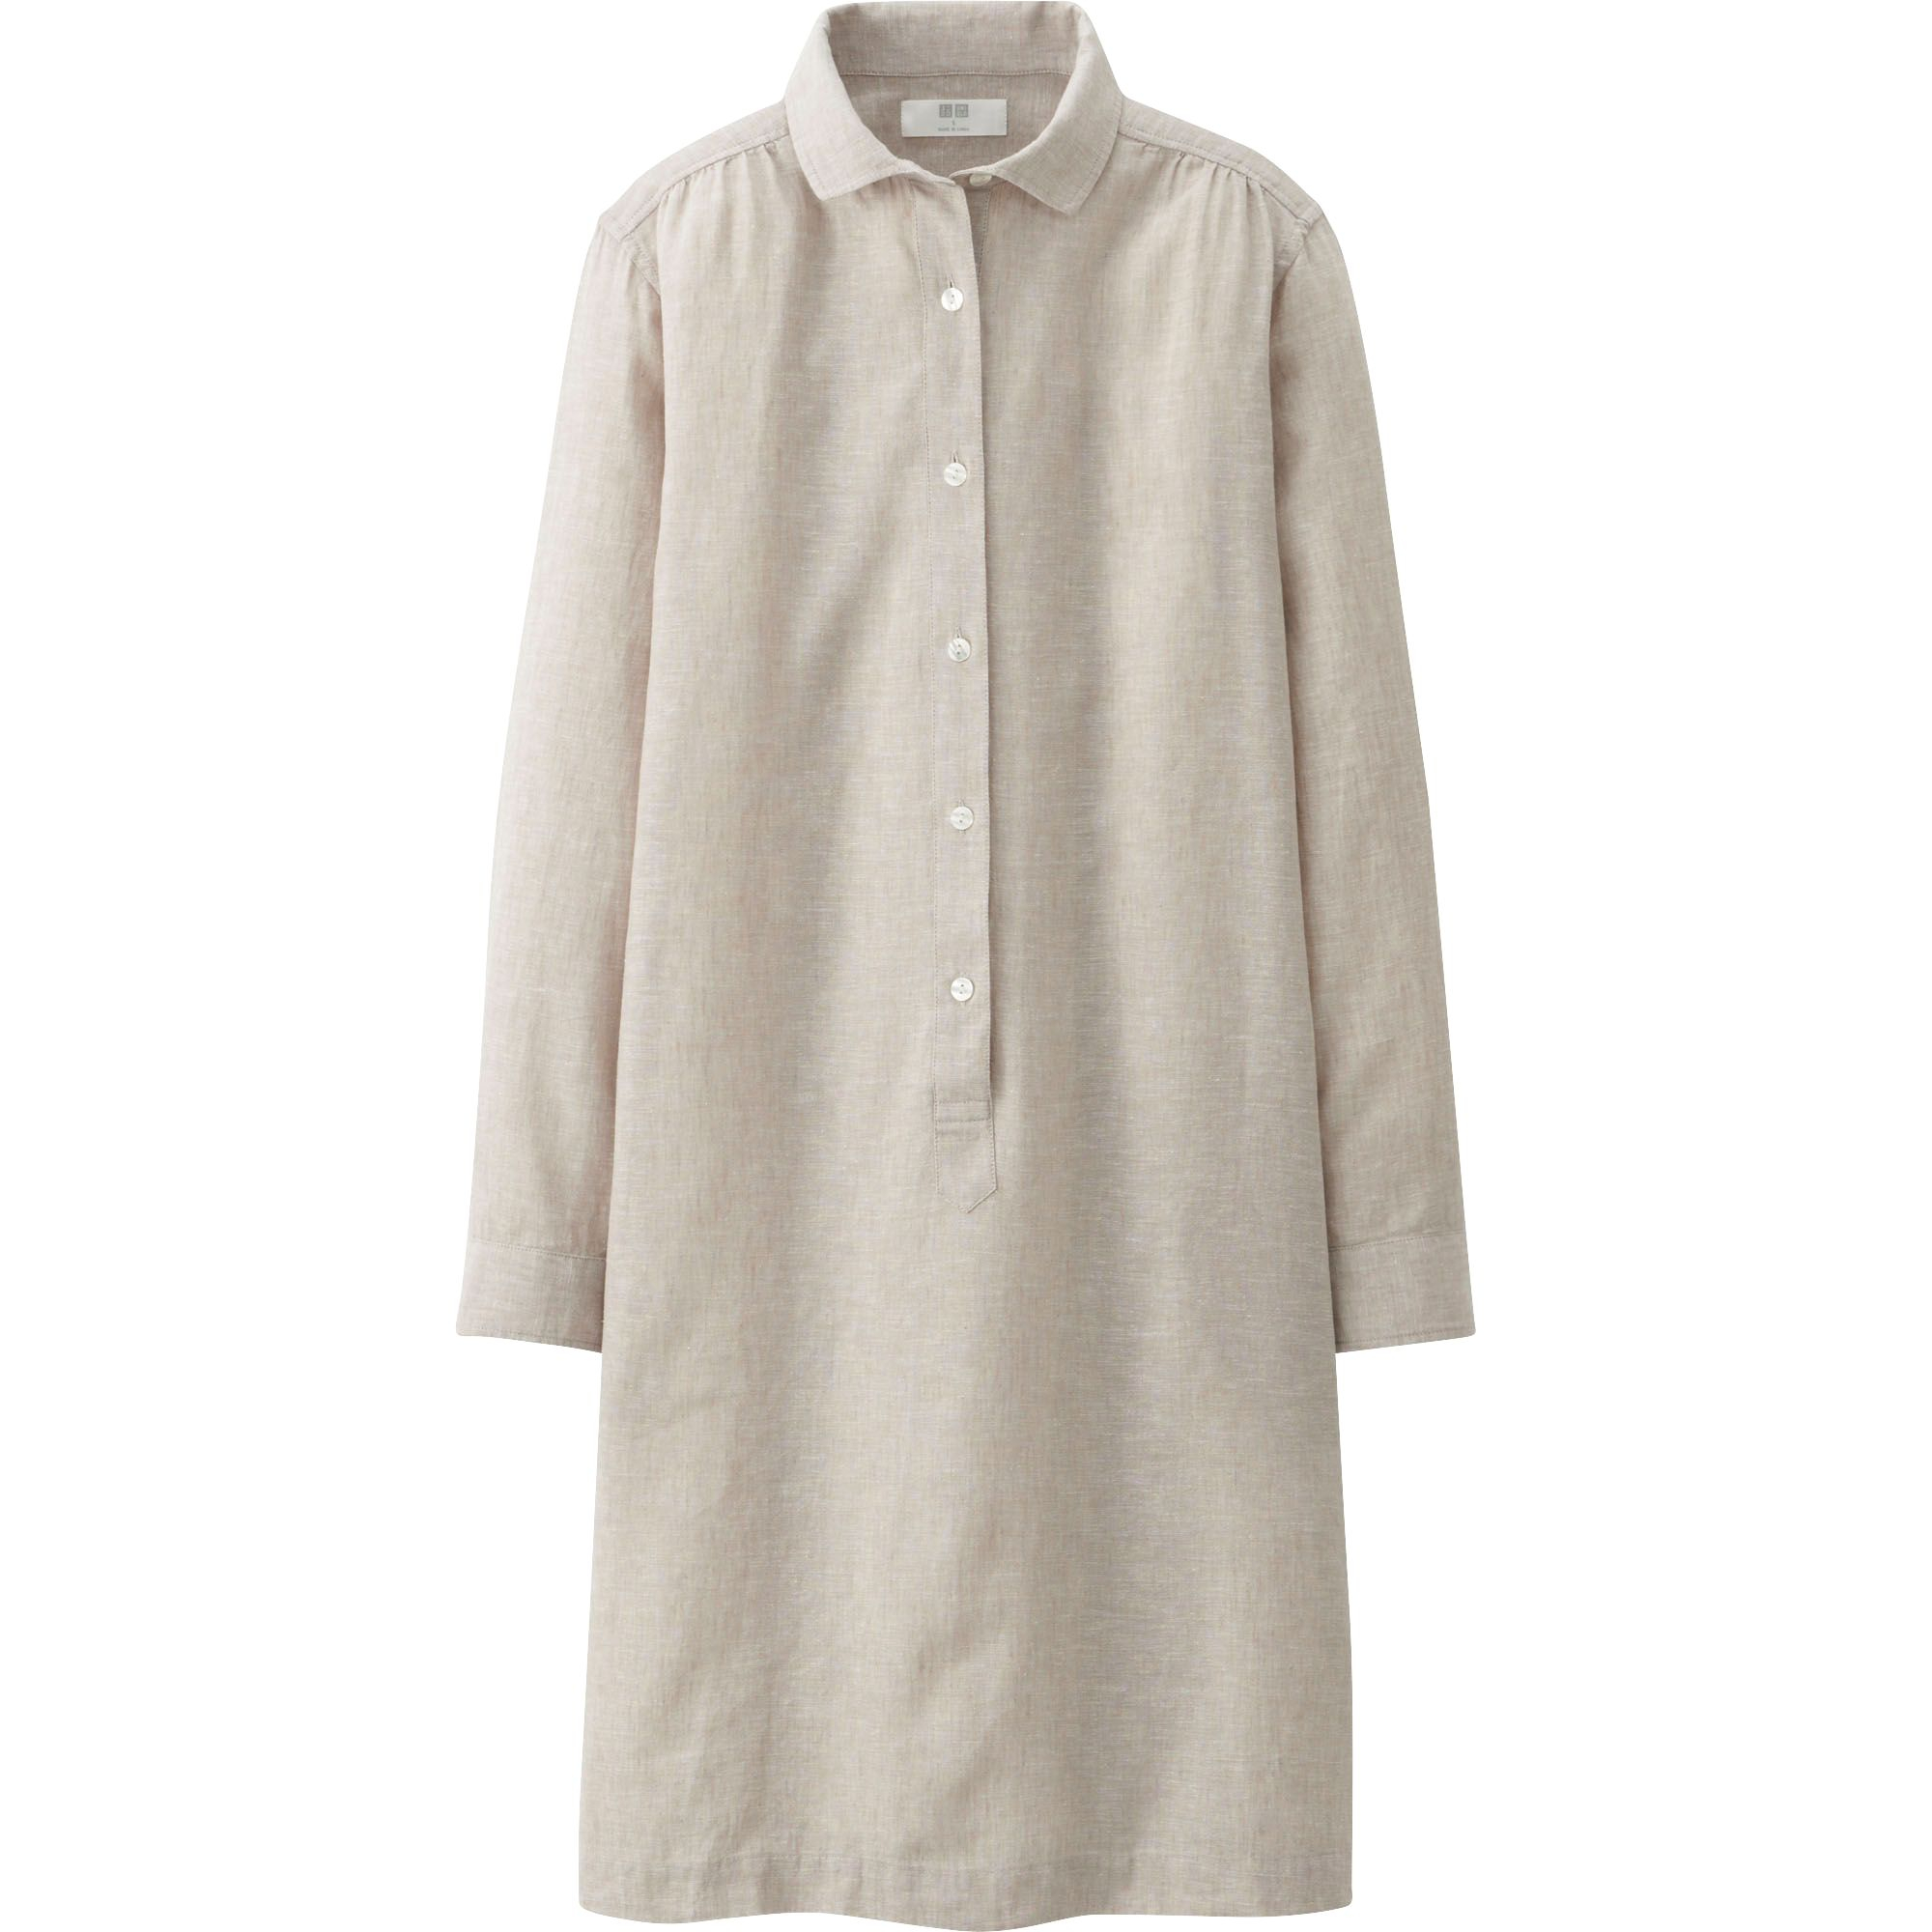 Uniqlo women linen cotton long sleeve shirt dress in beige Women s long sleeve shirt dress